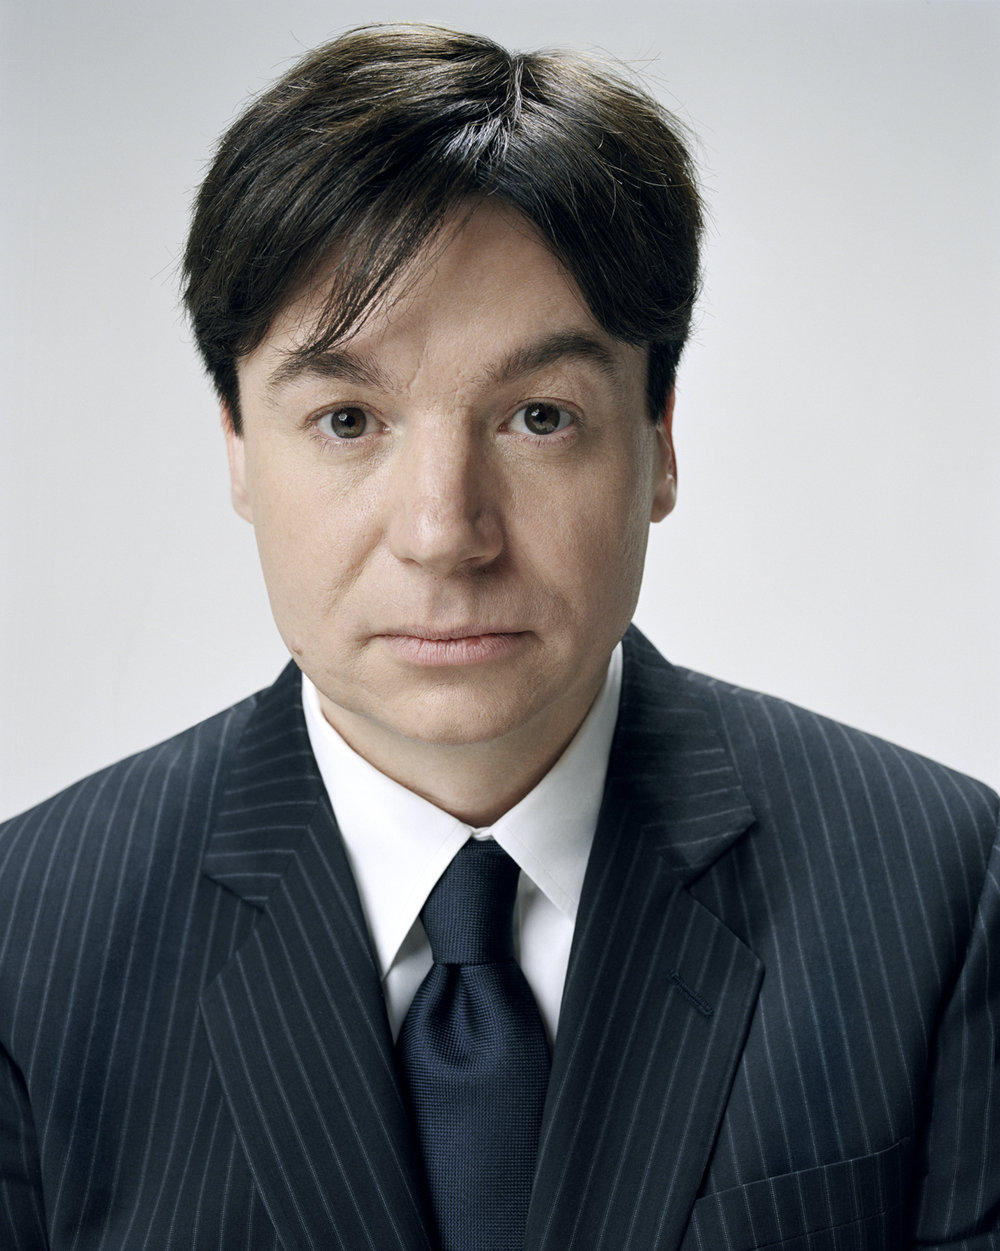 Mike Myers / Chris Floyd